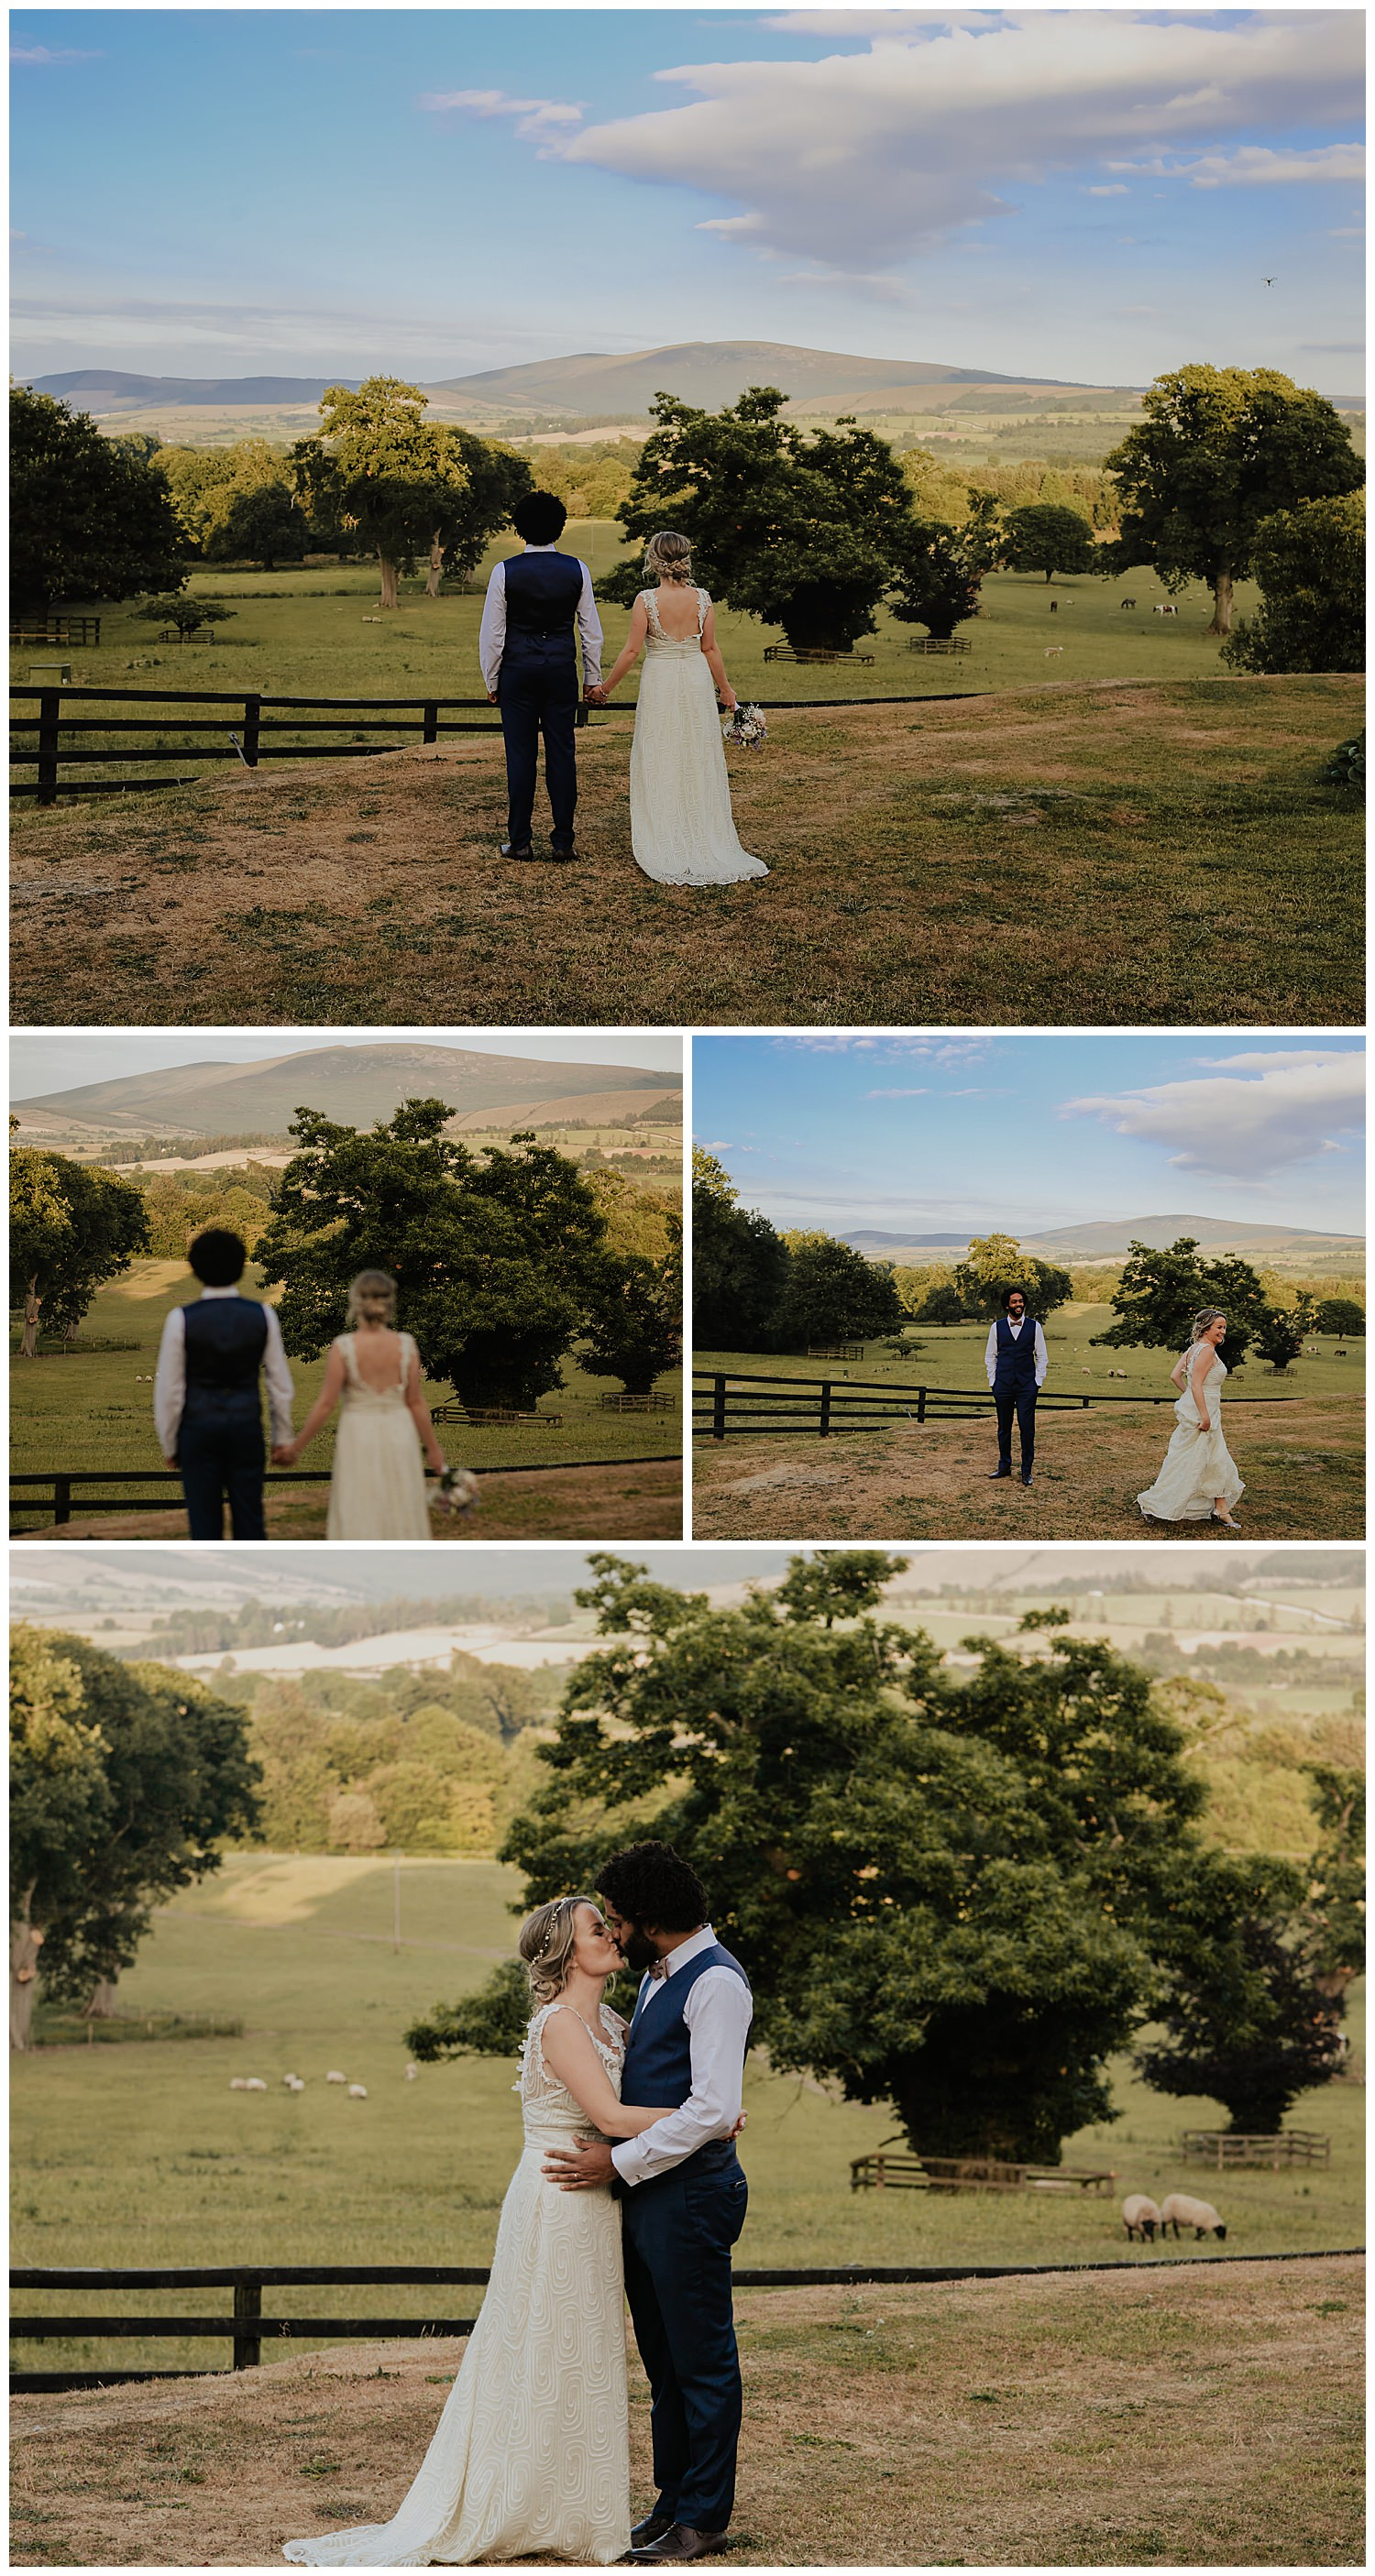 j&r_ballybeg_house_wedding_photographer_livia_figueiredo_649.jpg